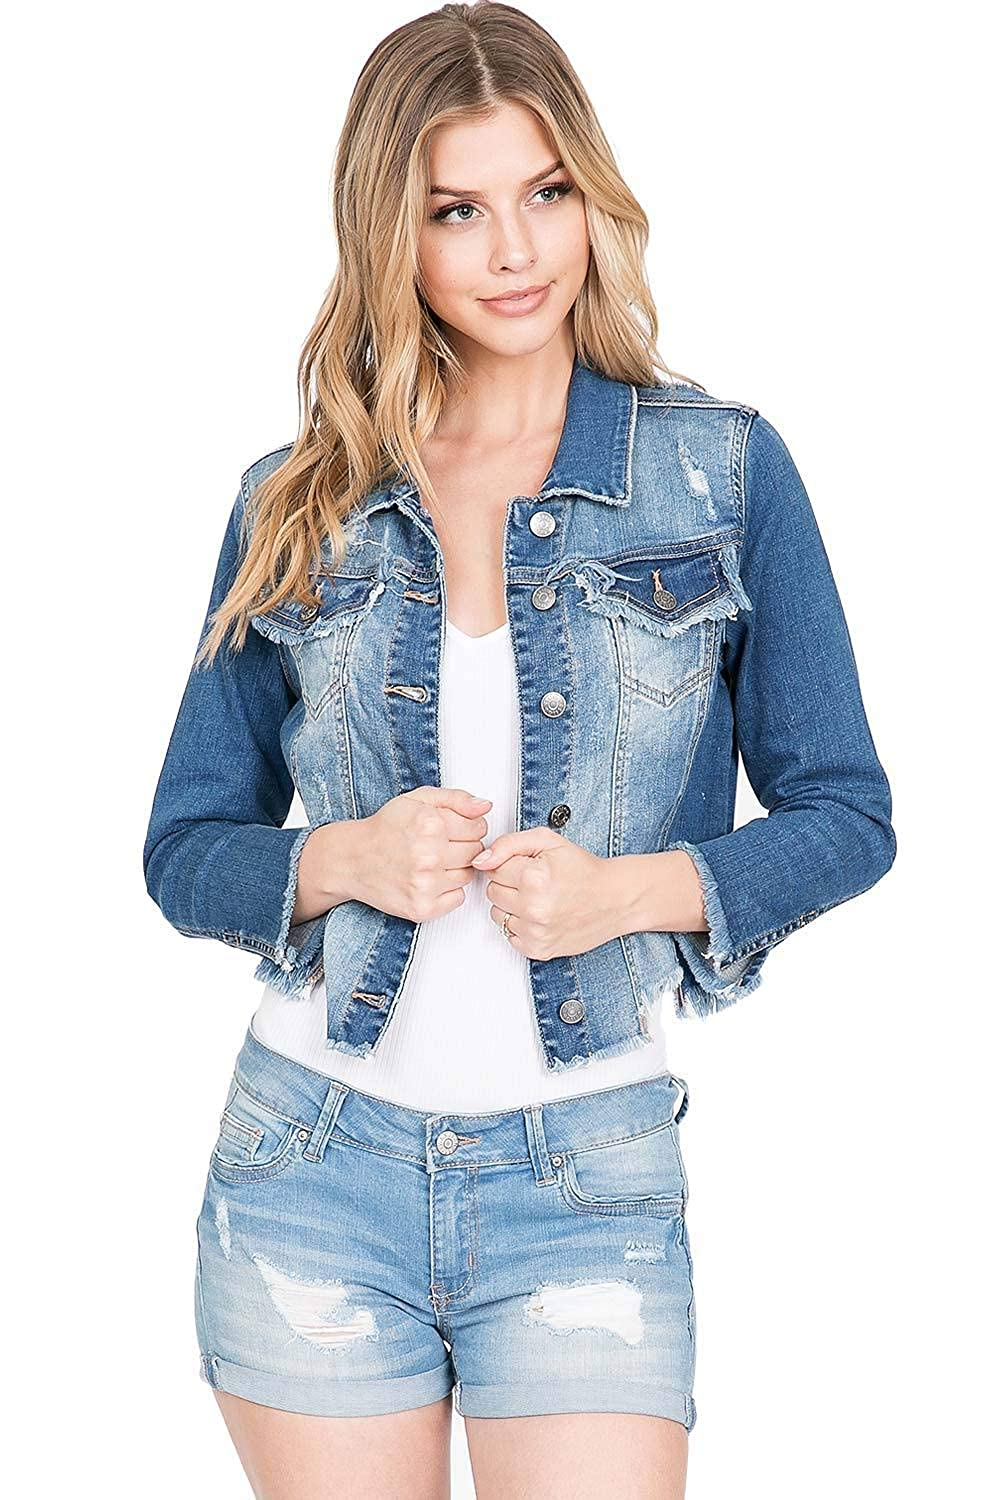 Cello Jeans Womens Distressed /& Frayed Jean Jacket